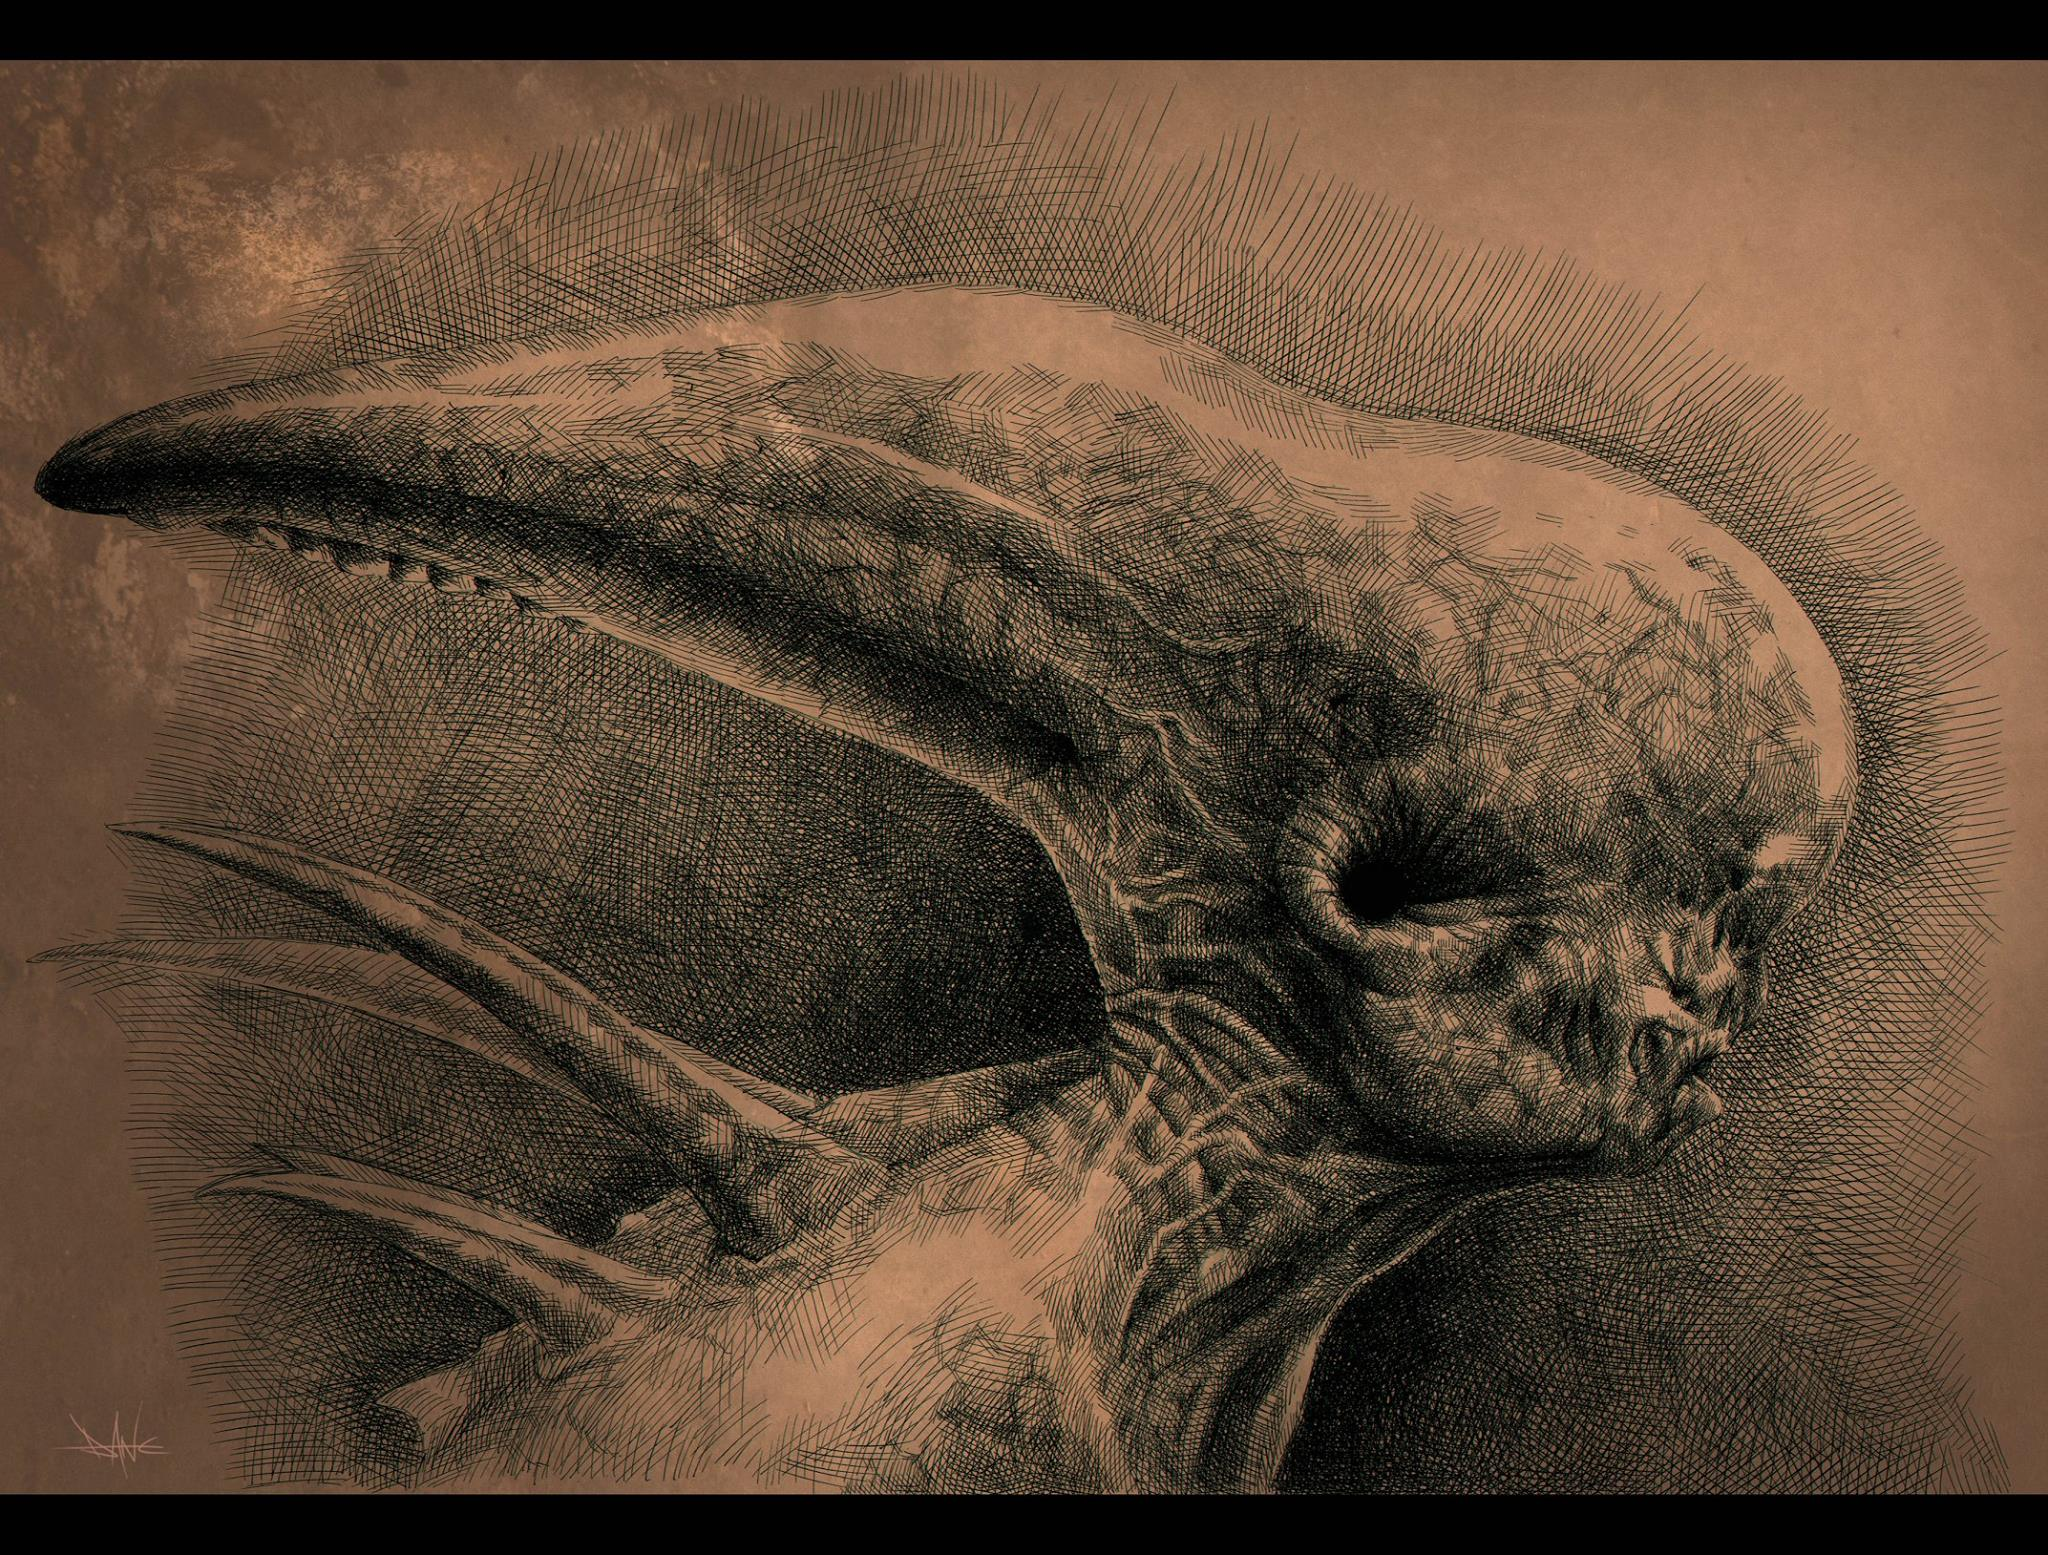 Dane Hallett & Matt Hatton Share Incredible Alien: Covenant Illustrations